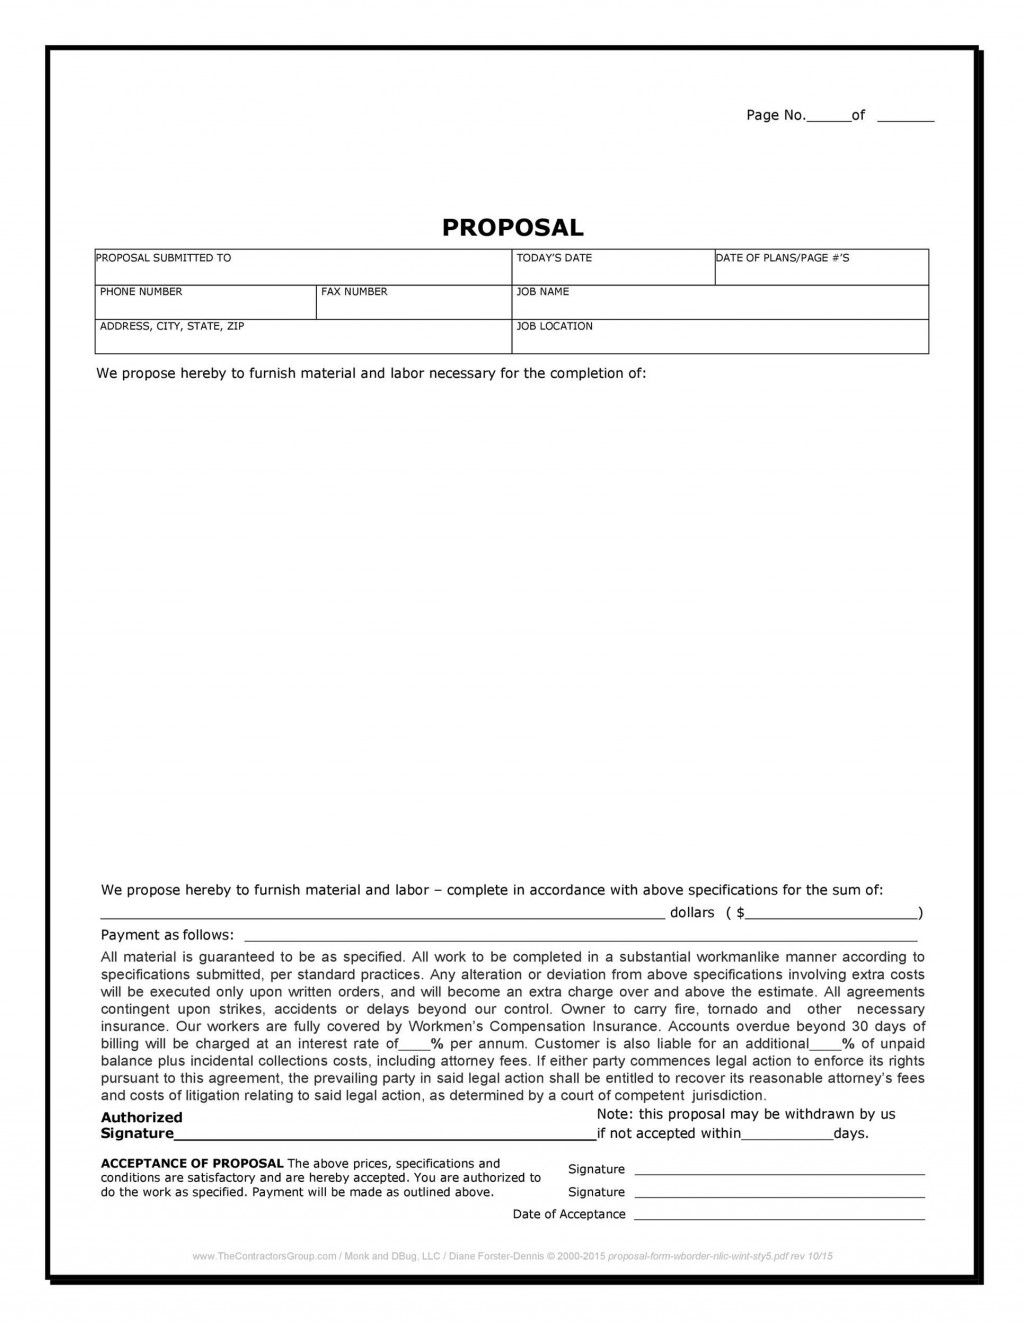 007 Exceptional Contractor Proposal Template Pdf High Definition  Construction Bid Upwork Sample FreeLarge